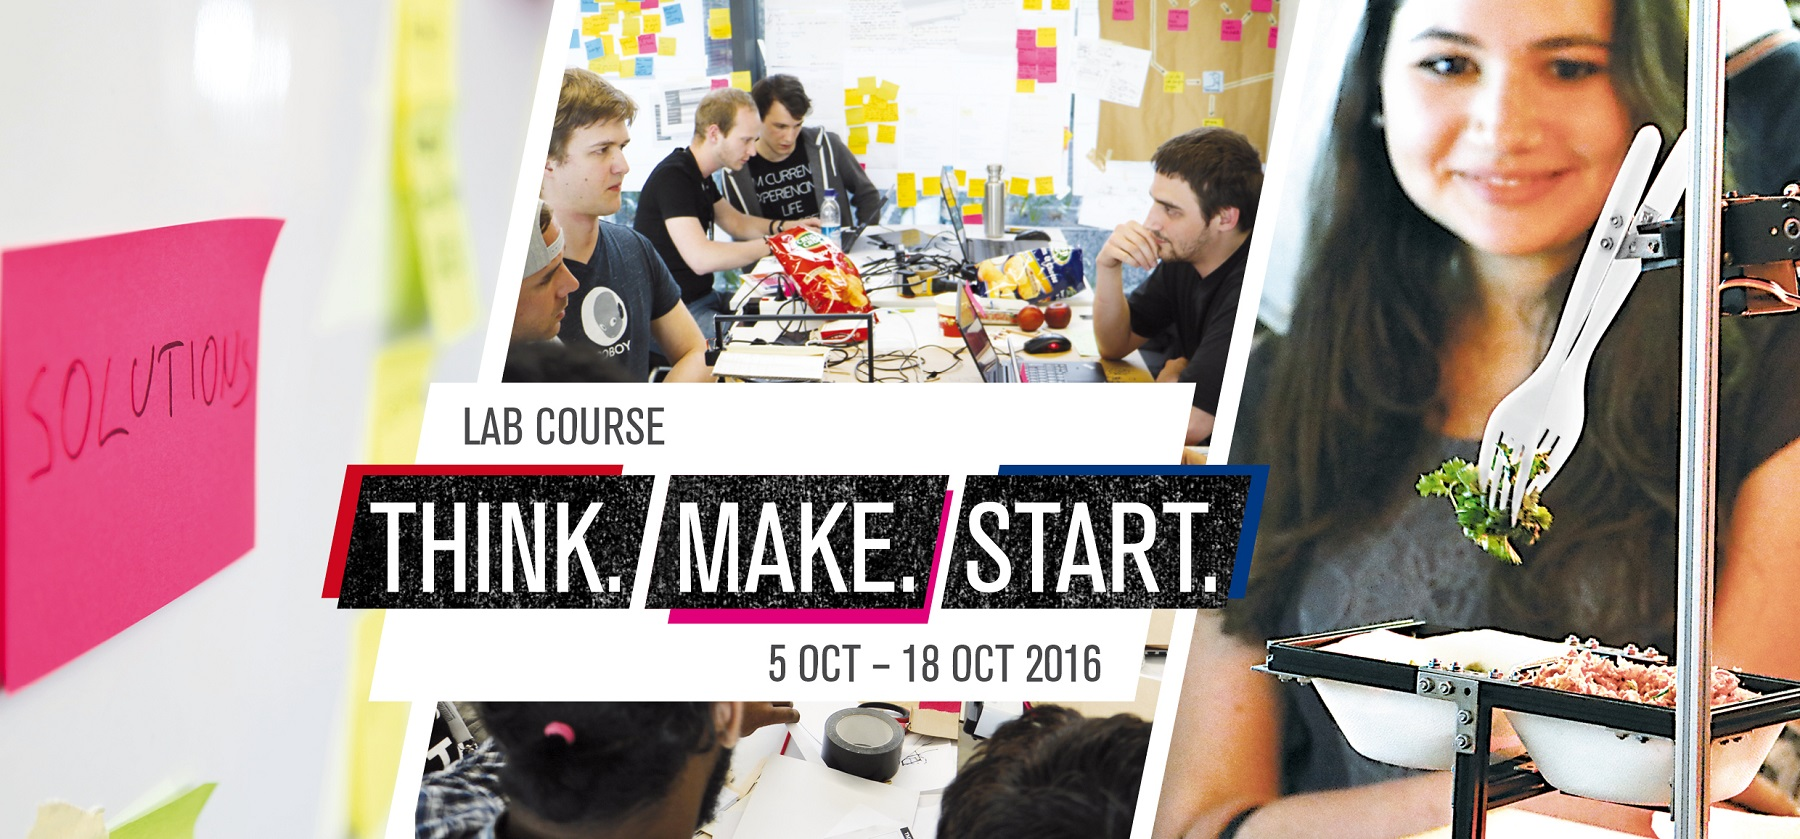 THINK.MAKE.START 2016/2 - Header